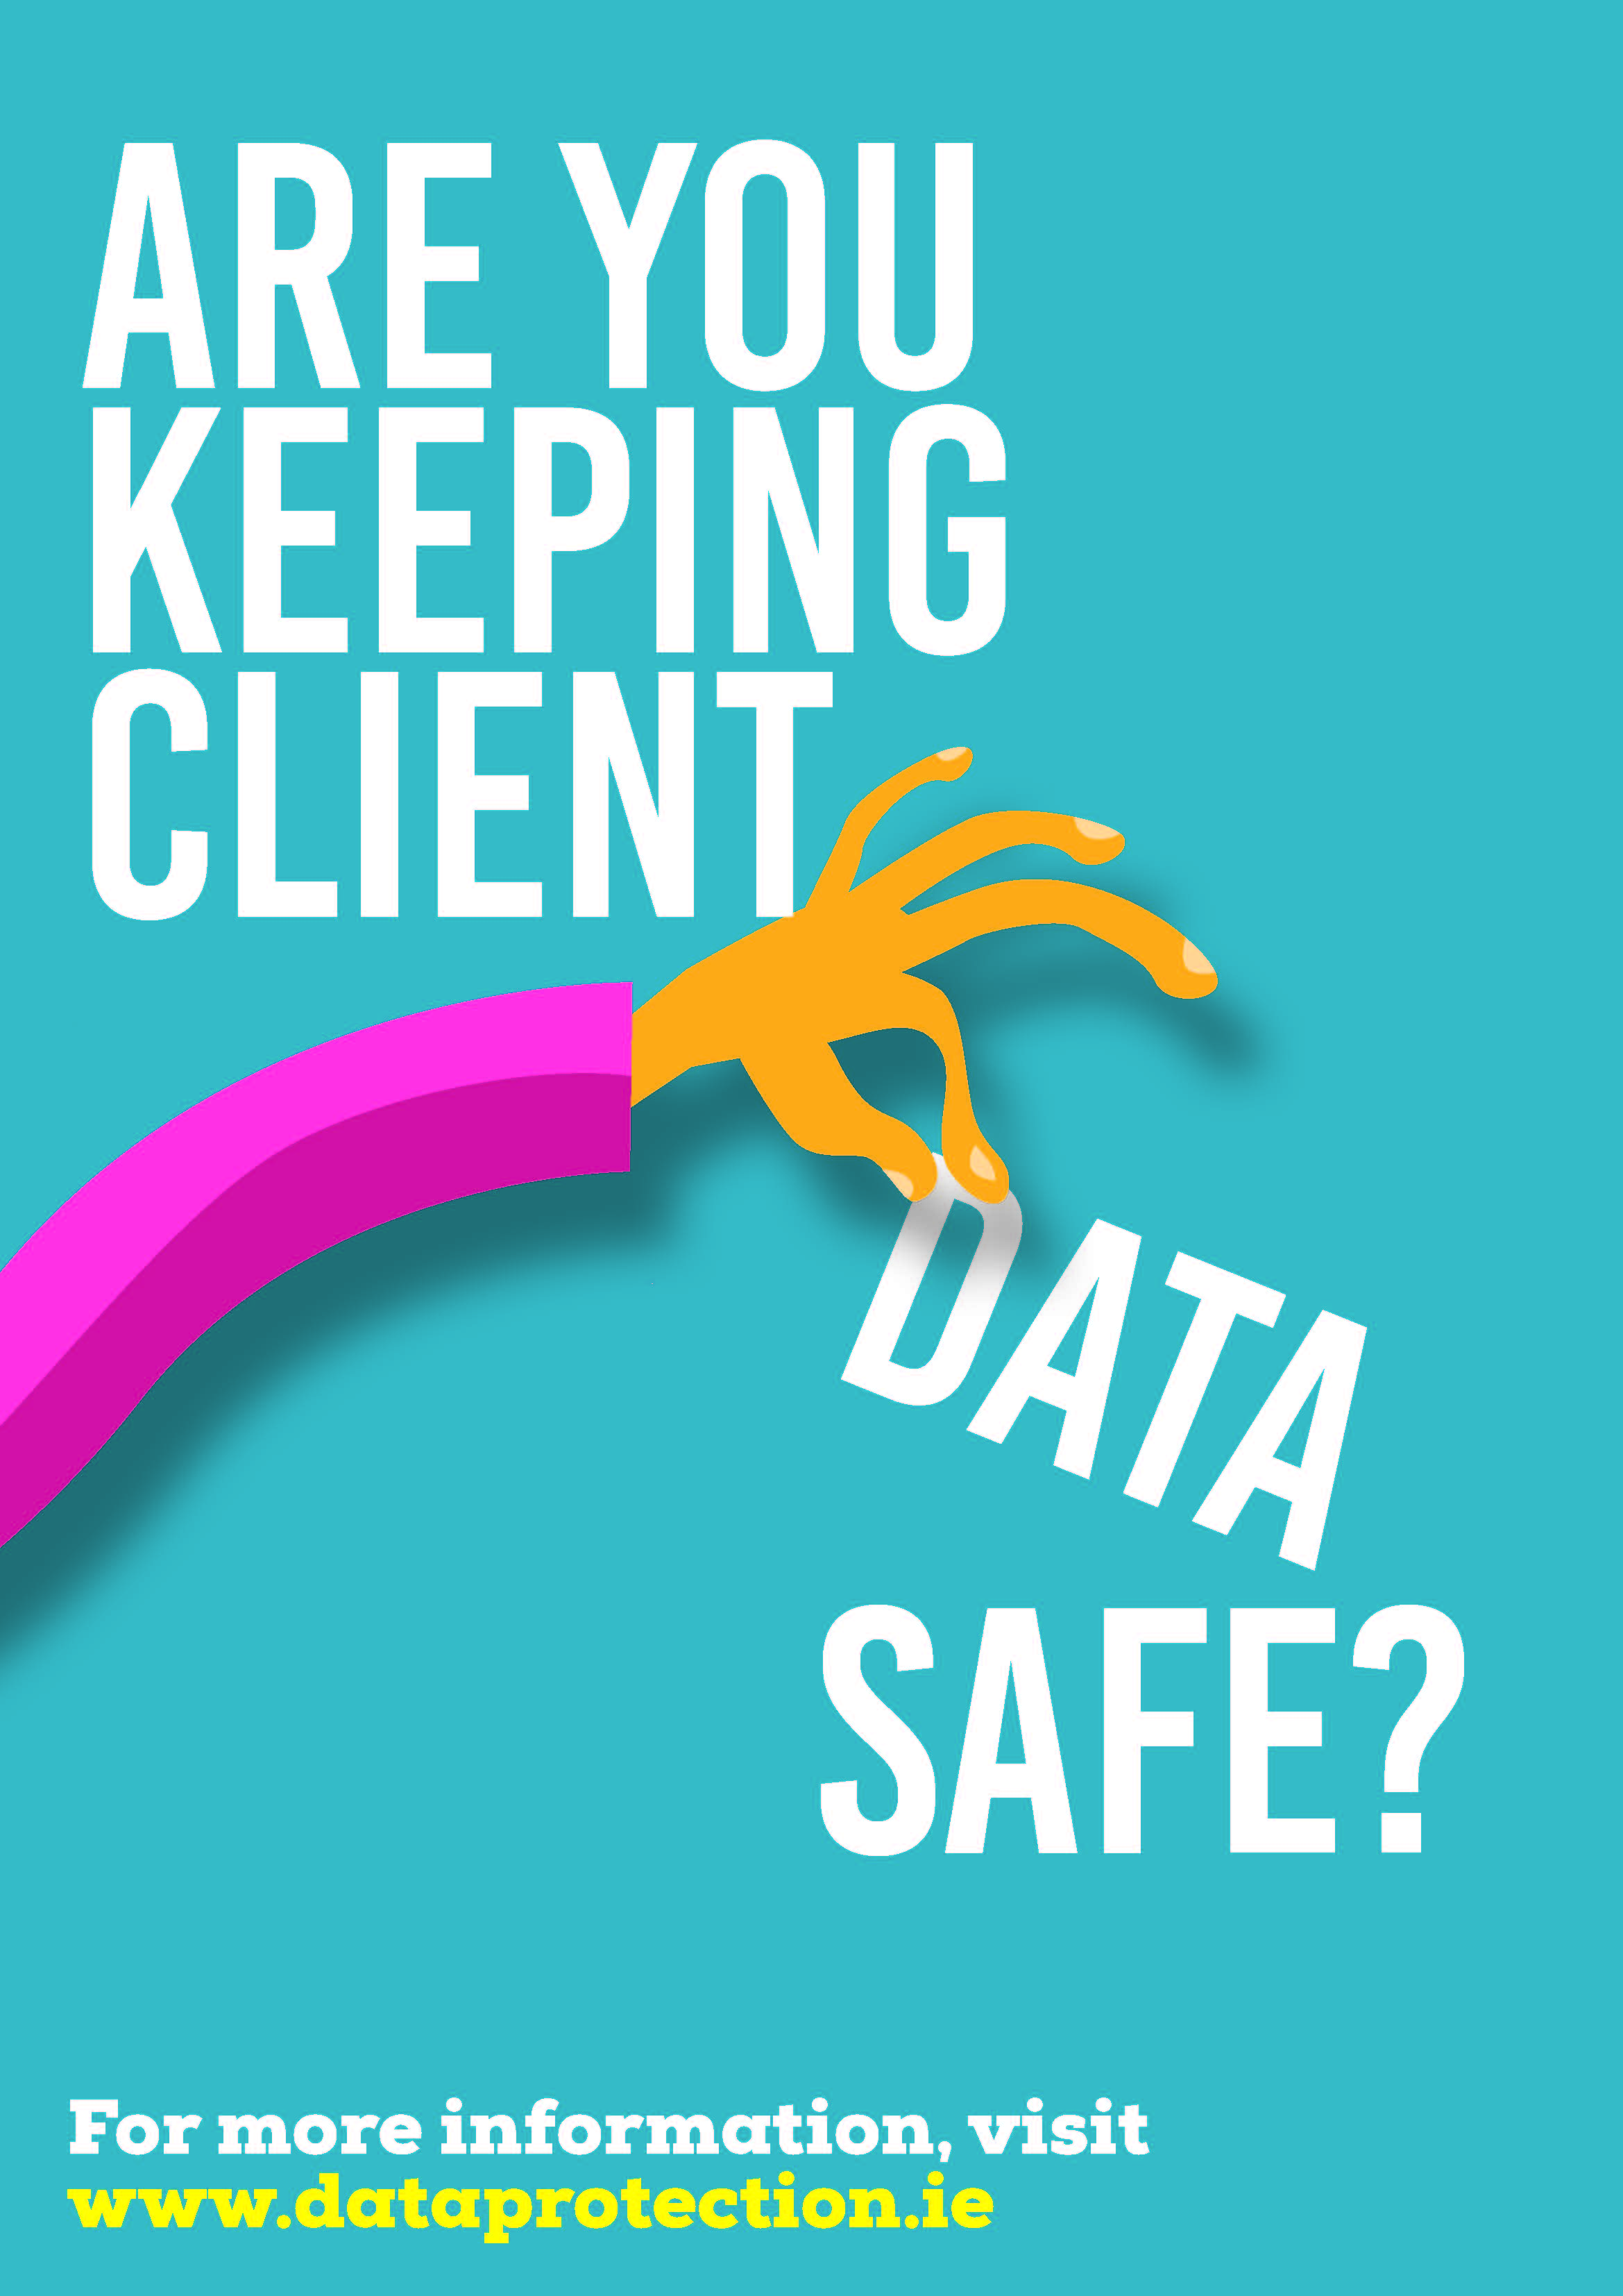 National Data Protection Awareness Day 28th January 2017